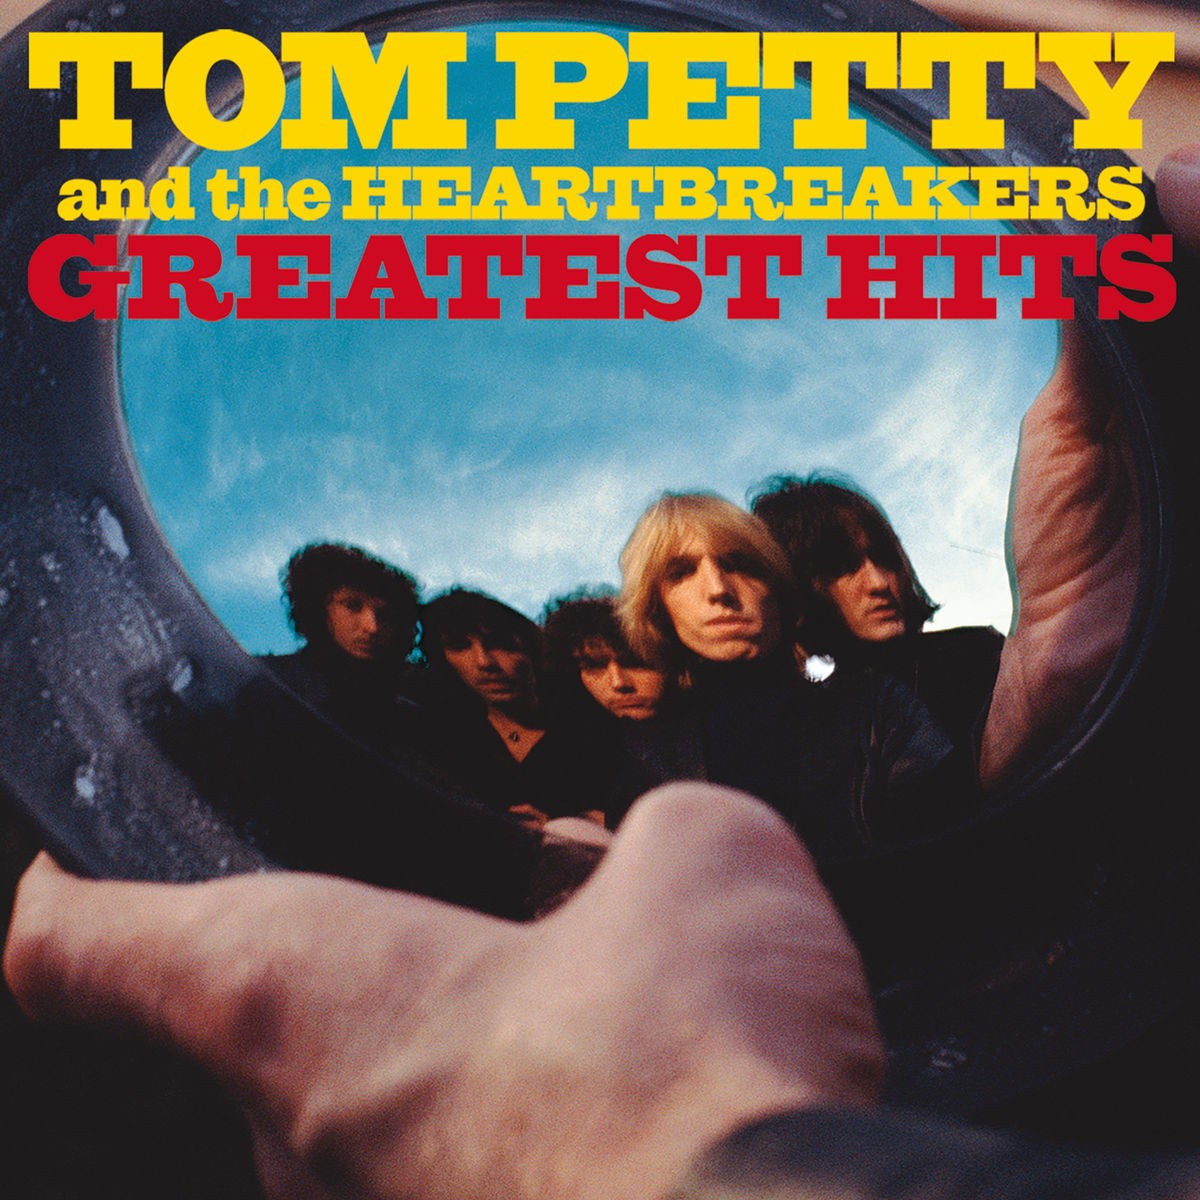 Tom Petty - Greatest Hits VINYL - 06025 4771426